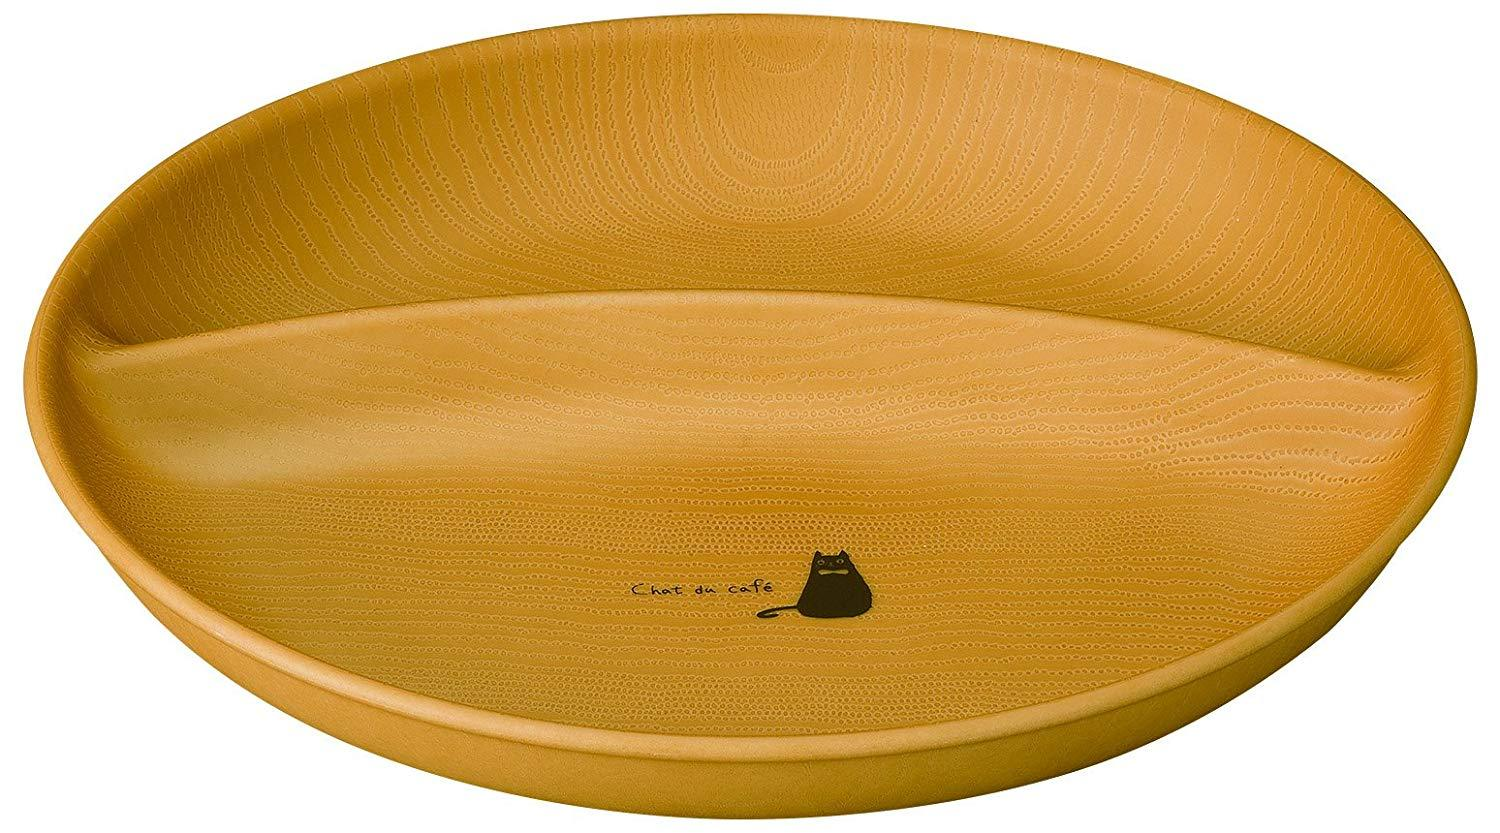 Chat du Café Divided Plate | Oval by Showa - Bento&con the Bento Boxes specialist from Kyoto